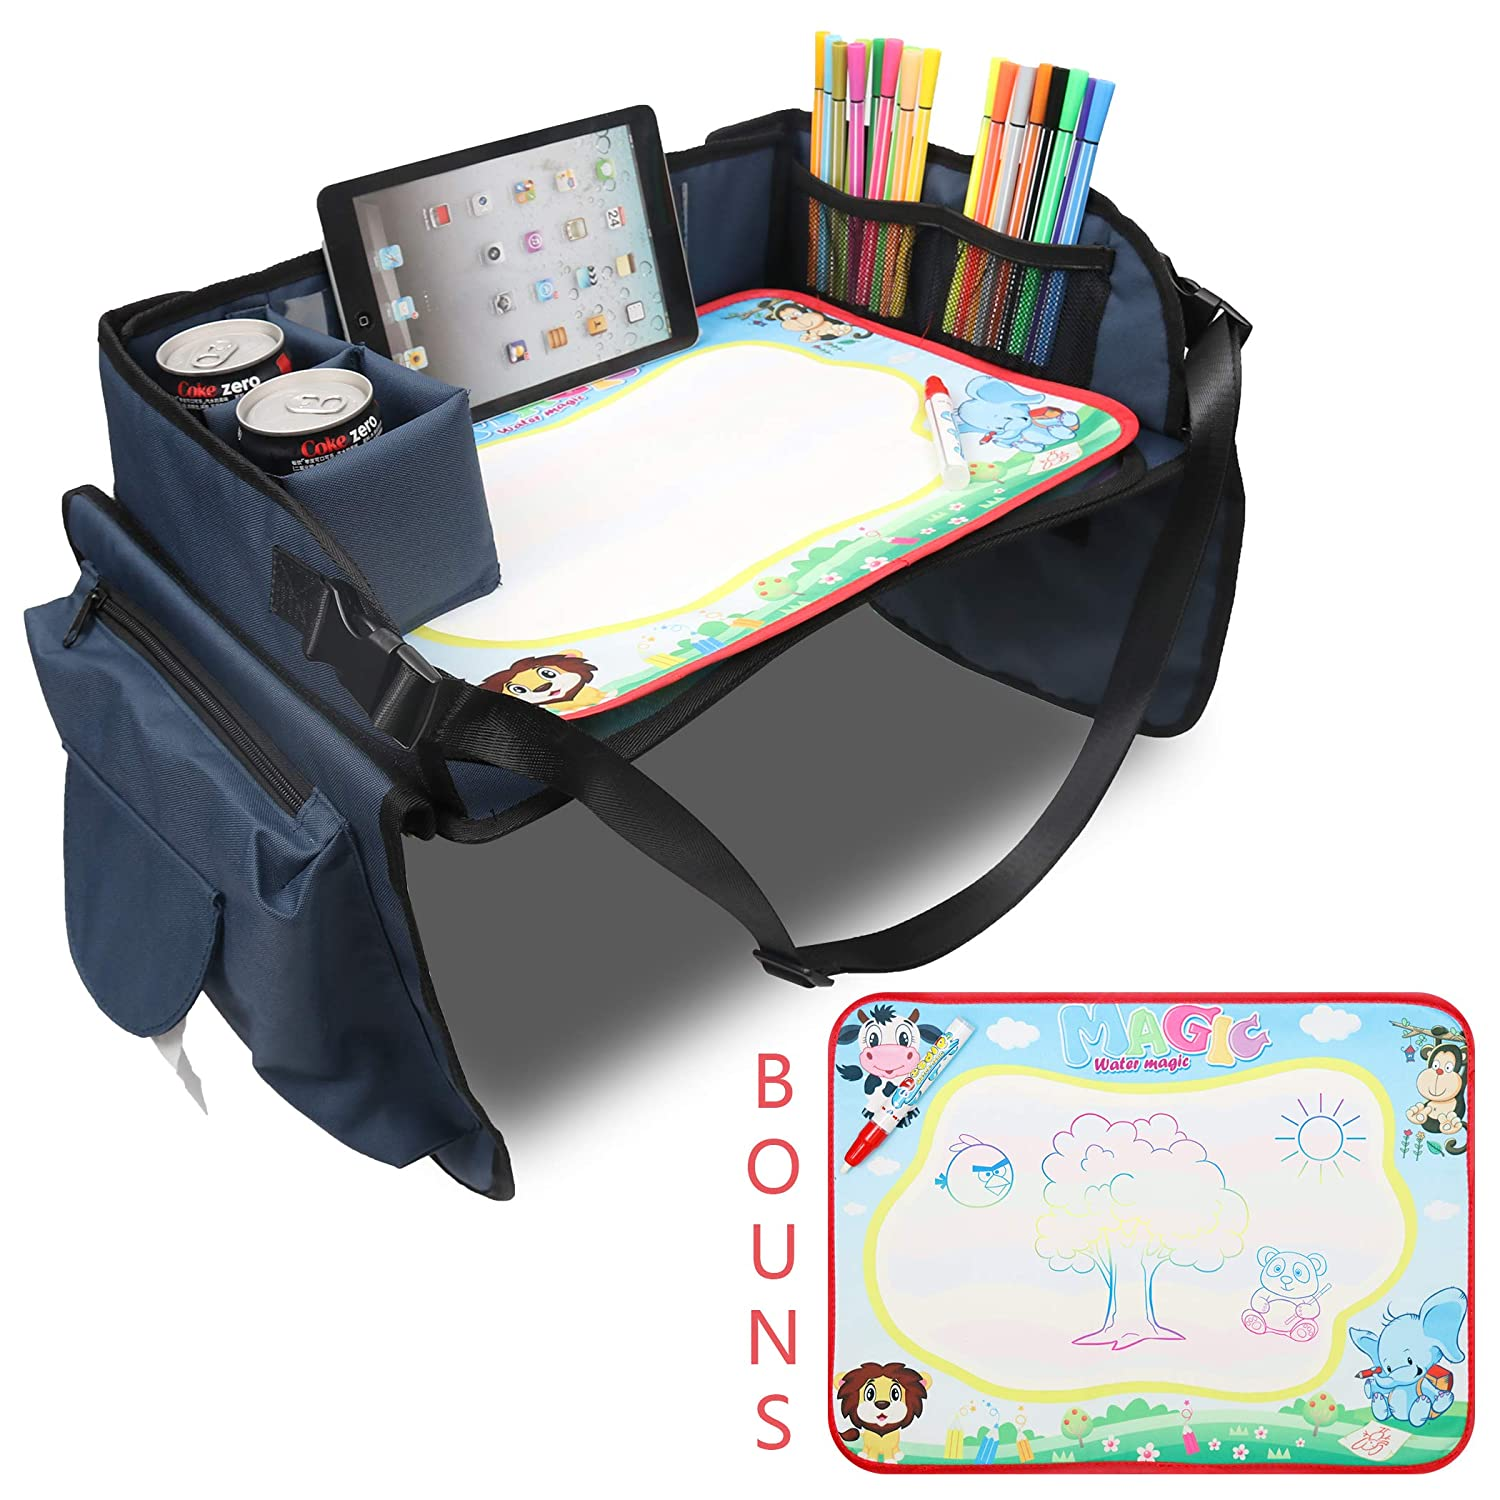 Becko Children's Travel Toy Tray Kids' Car Seat Snack, Game Tray Activity Table for Stroller, Car, Airplane, Road Trip with Doodle Mat, Foldaway & Portable